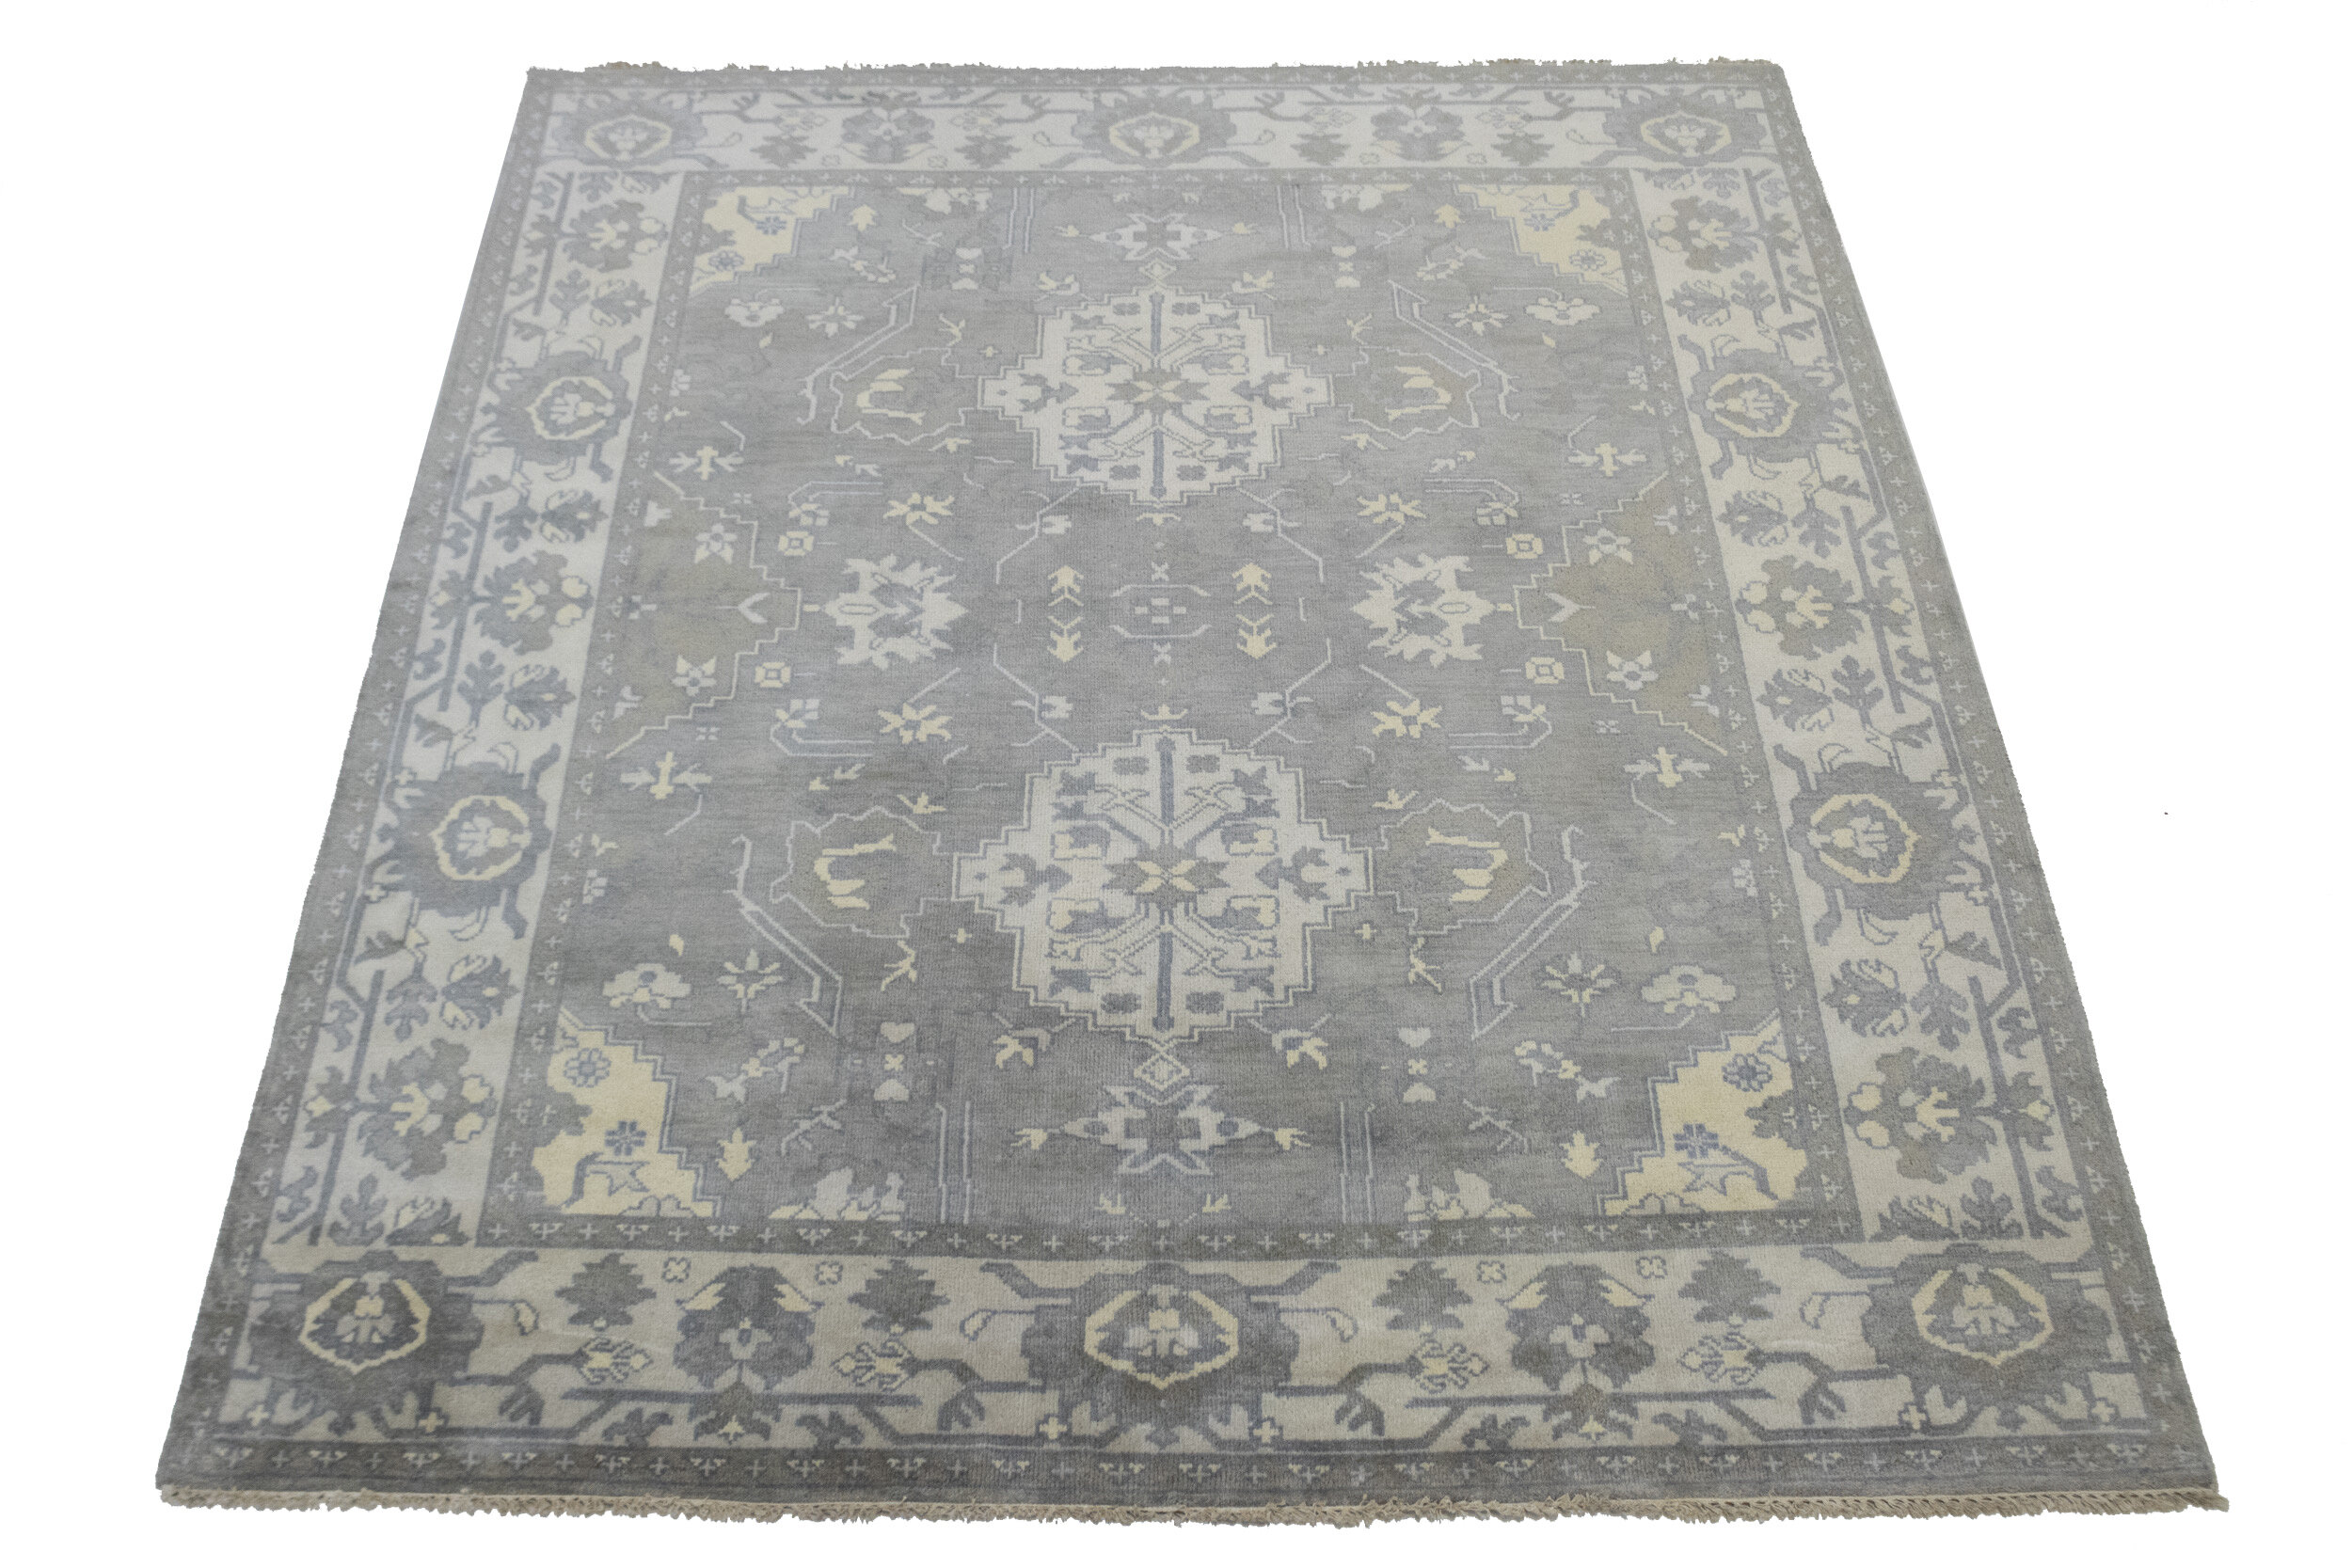 Adminrugs Oriental Hand Knotted Wool Muted Gray Area Rug Wayfair